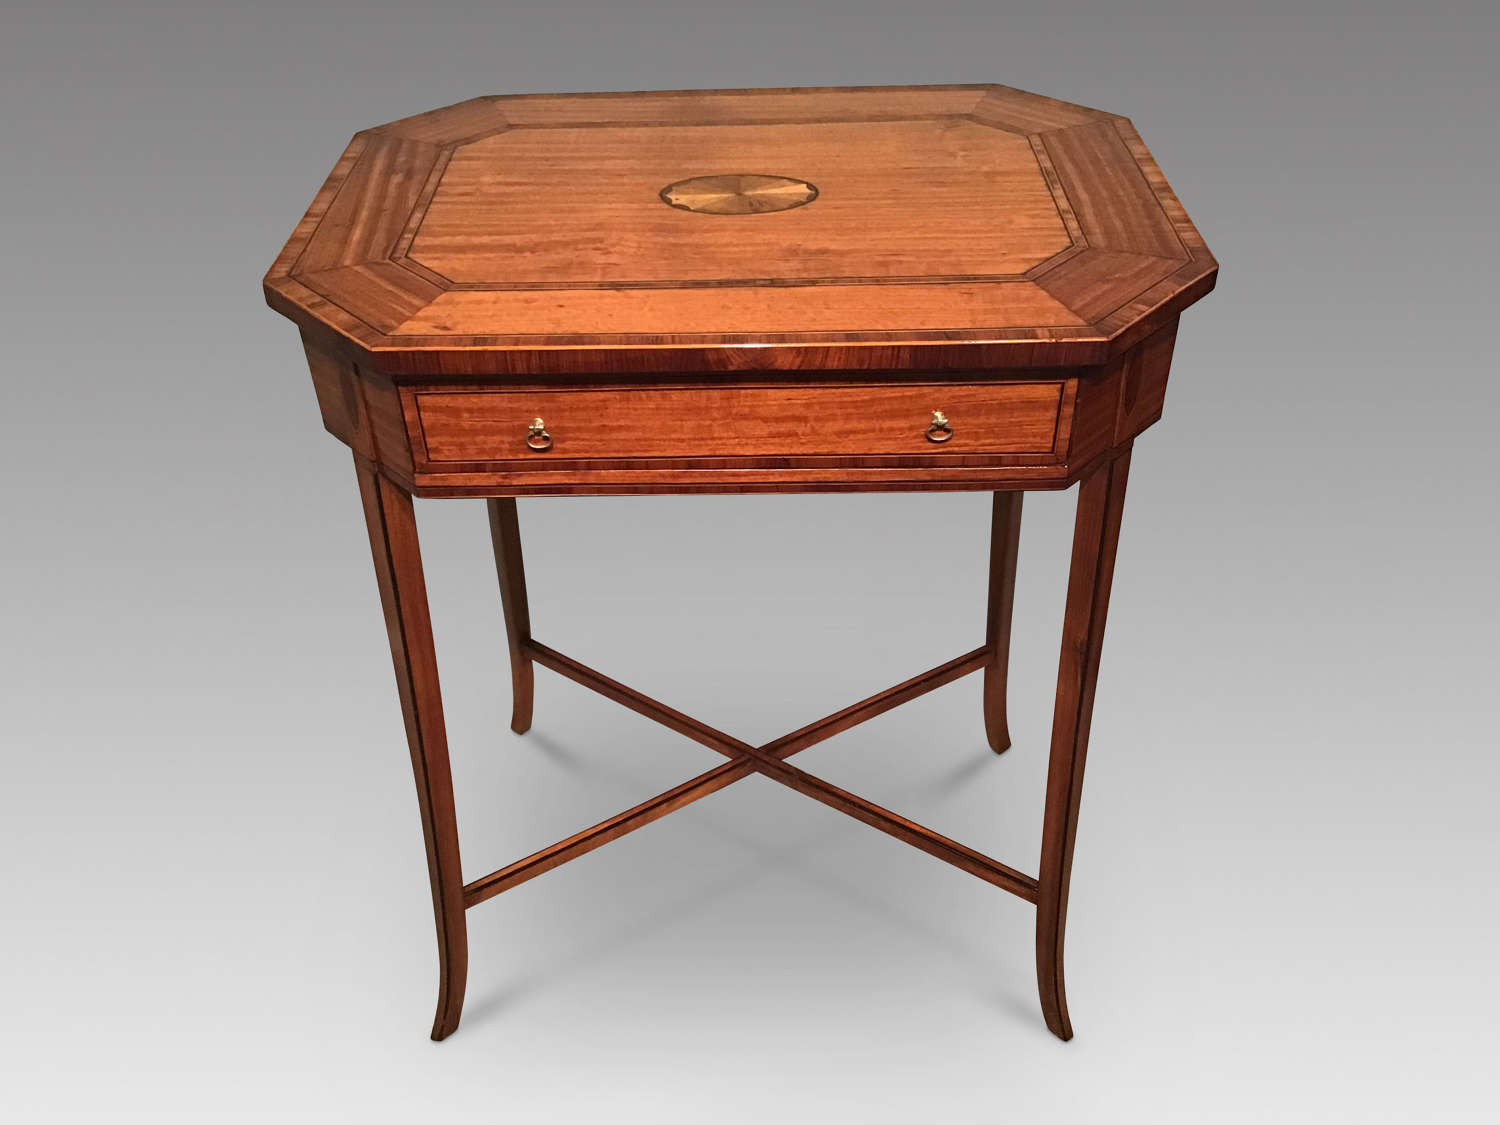 Antique satinwood table